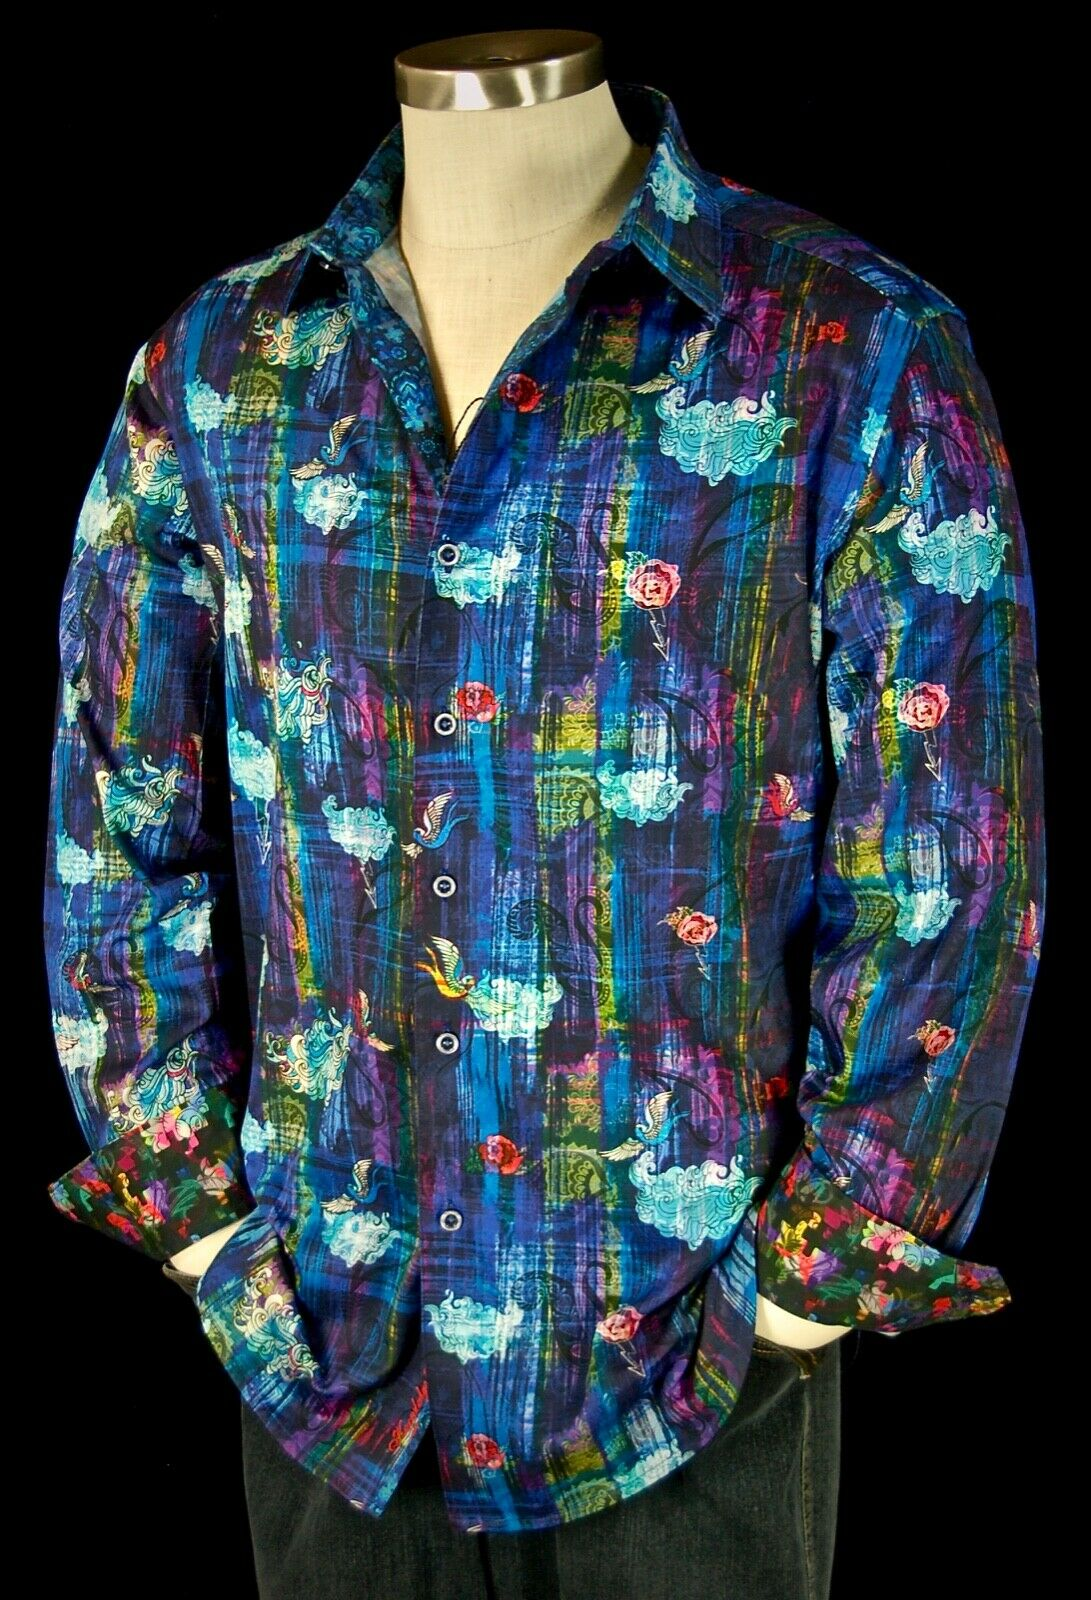 Robert Graham 'Kiva' NWT  Rare bluee Masterpiece Sports Shirt 2XL